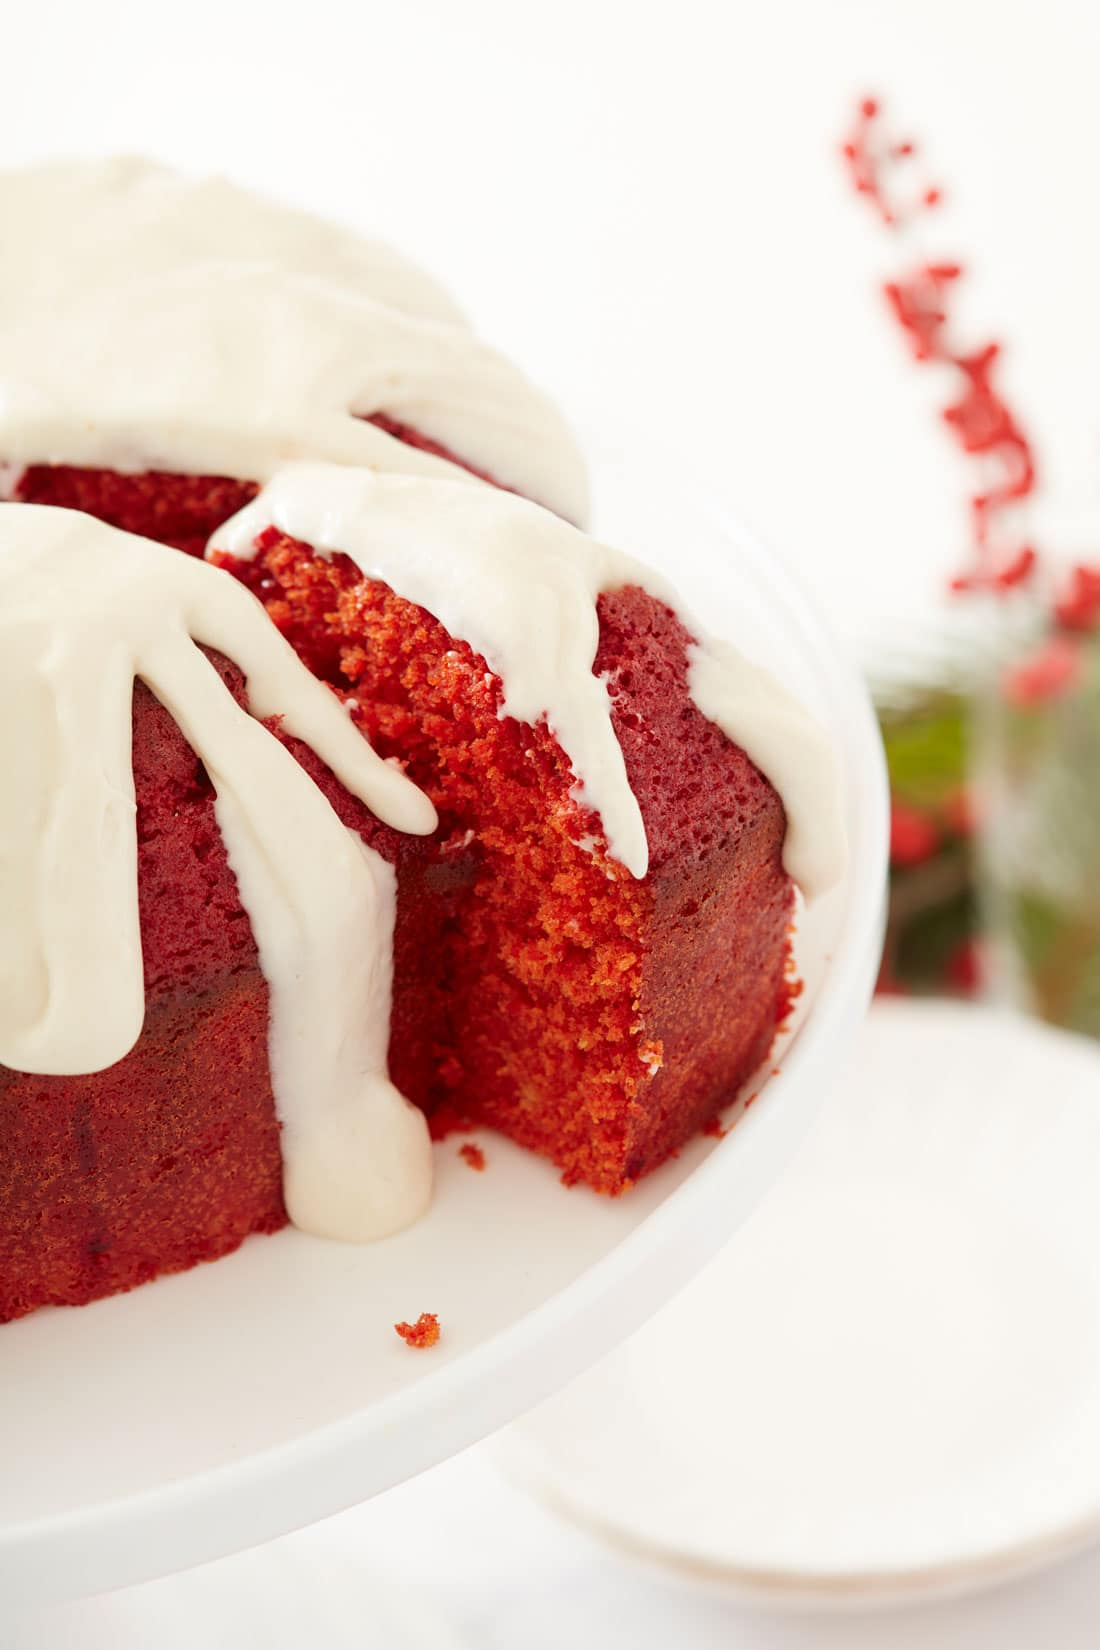 Closeup Image of Miss Jones Baking Co's Red Velvet Bundt Cake and Cream Cheese Glaze with a slice being cut